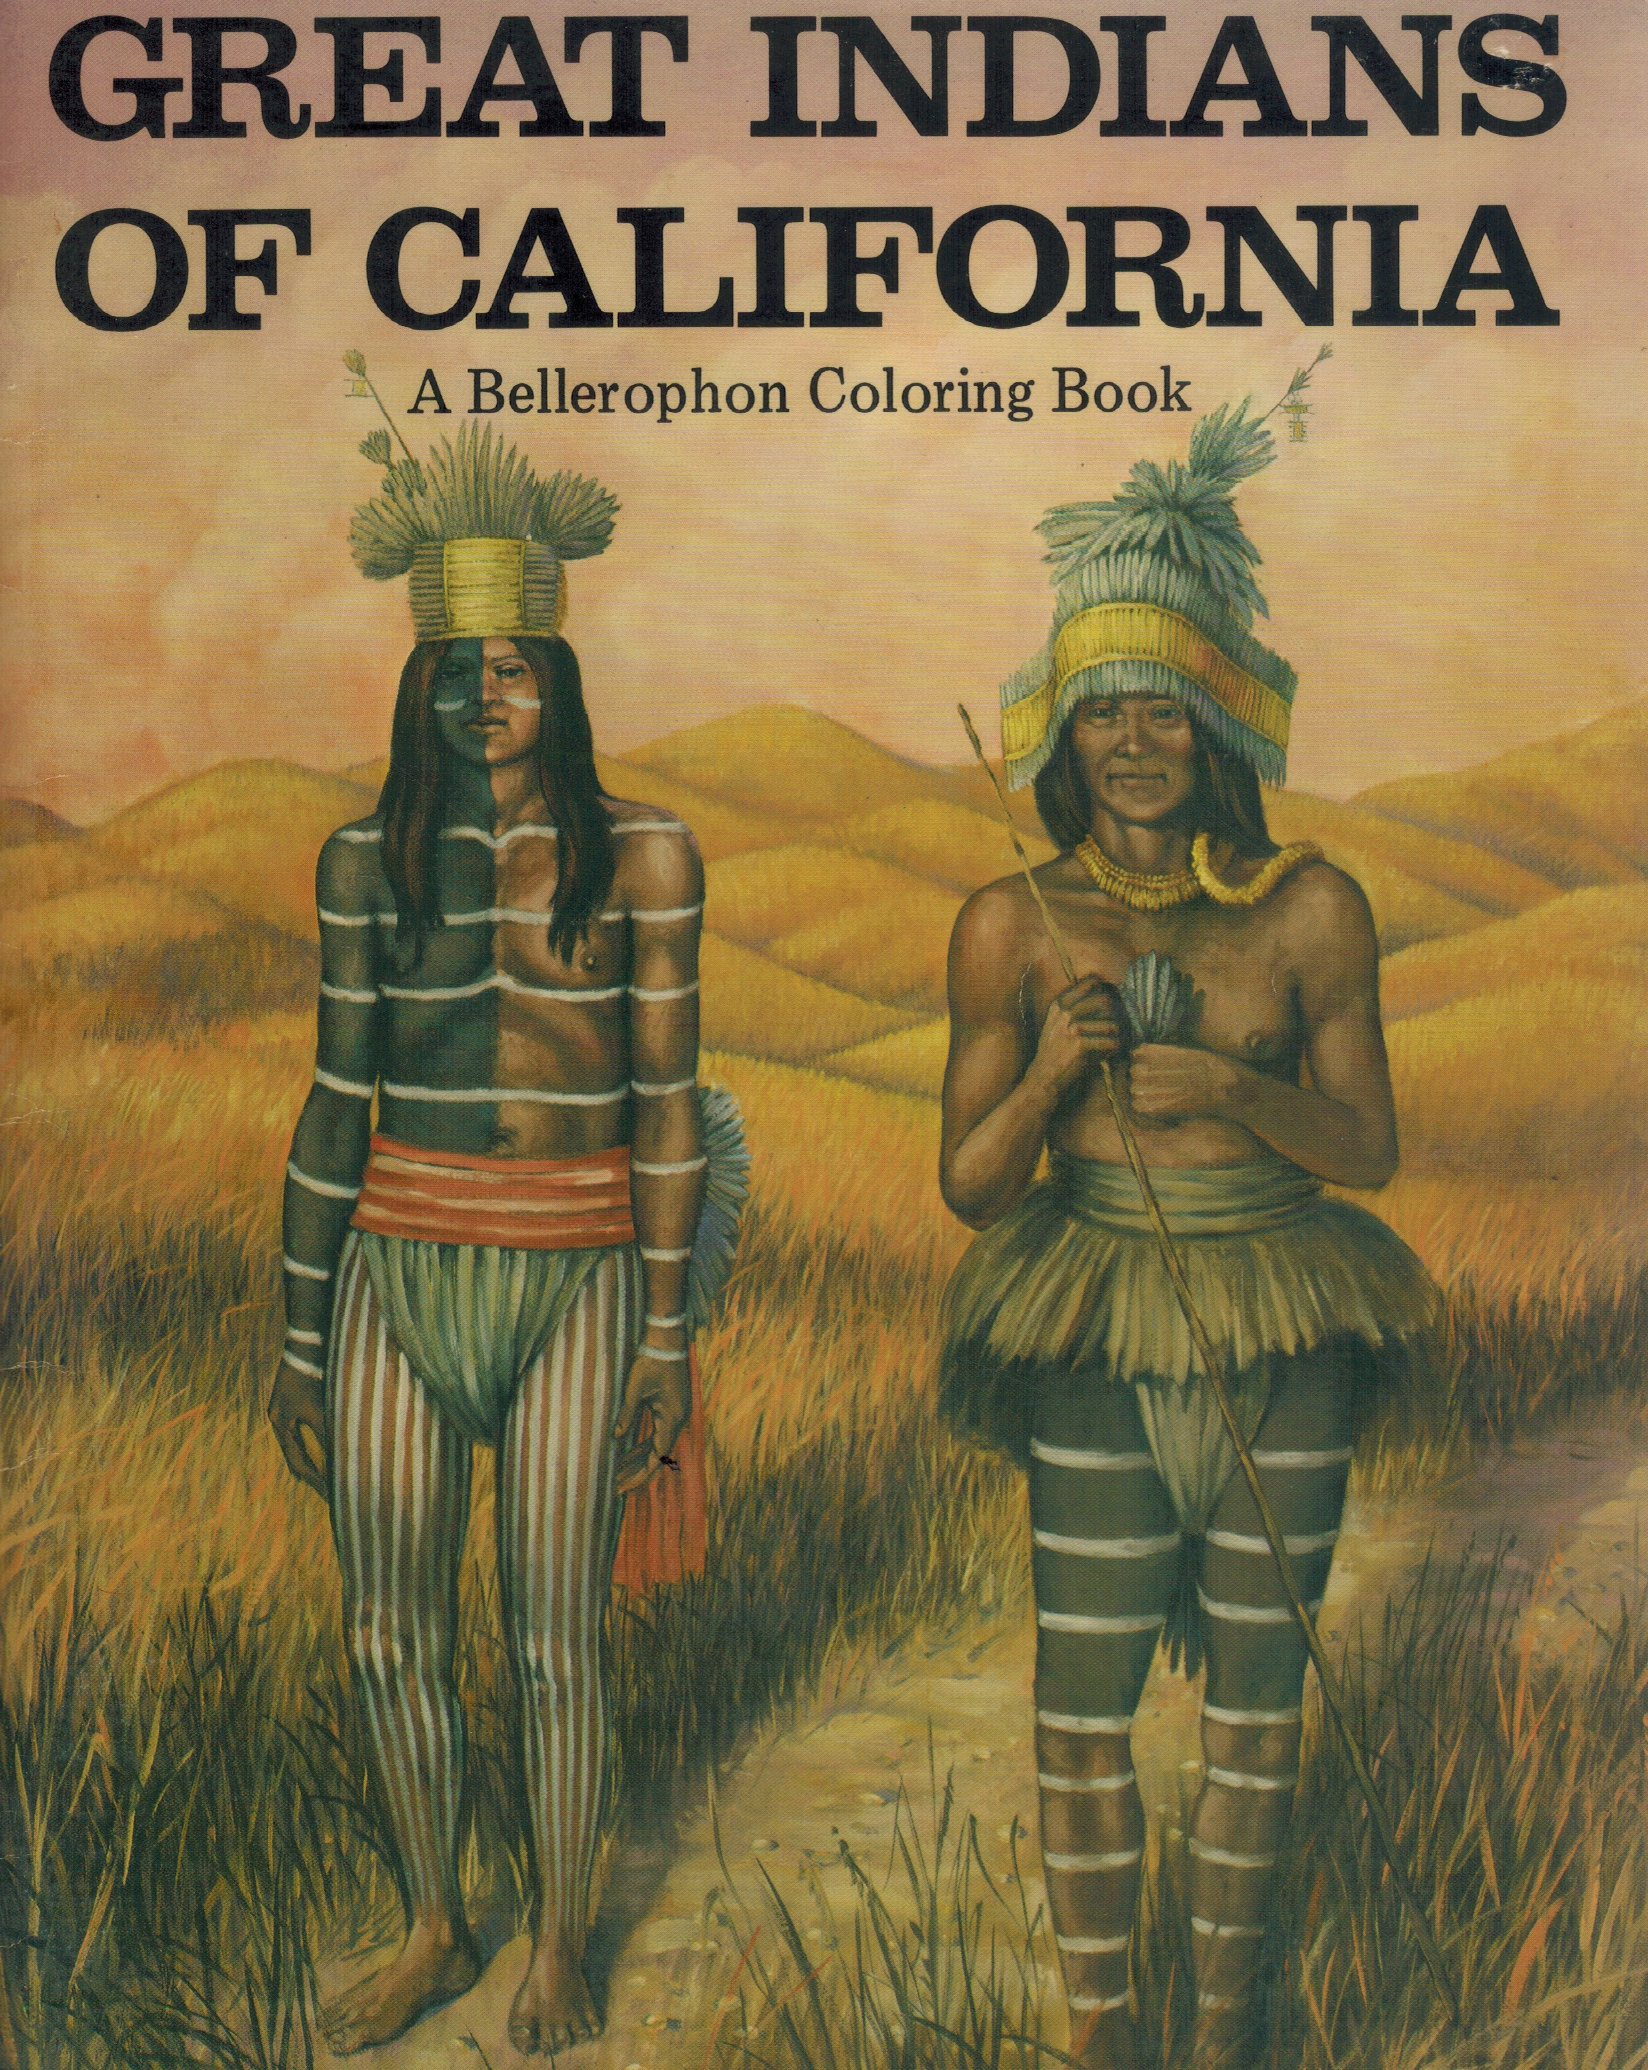 GREAT INDIANS OF CALIFORNIA A Bellerophon Coloring Book by Knill ...